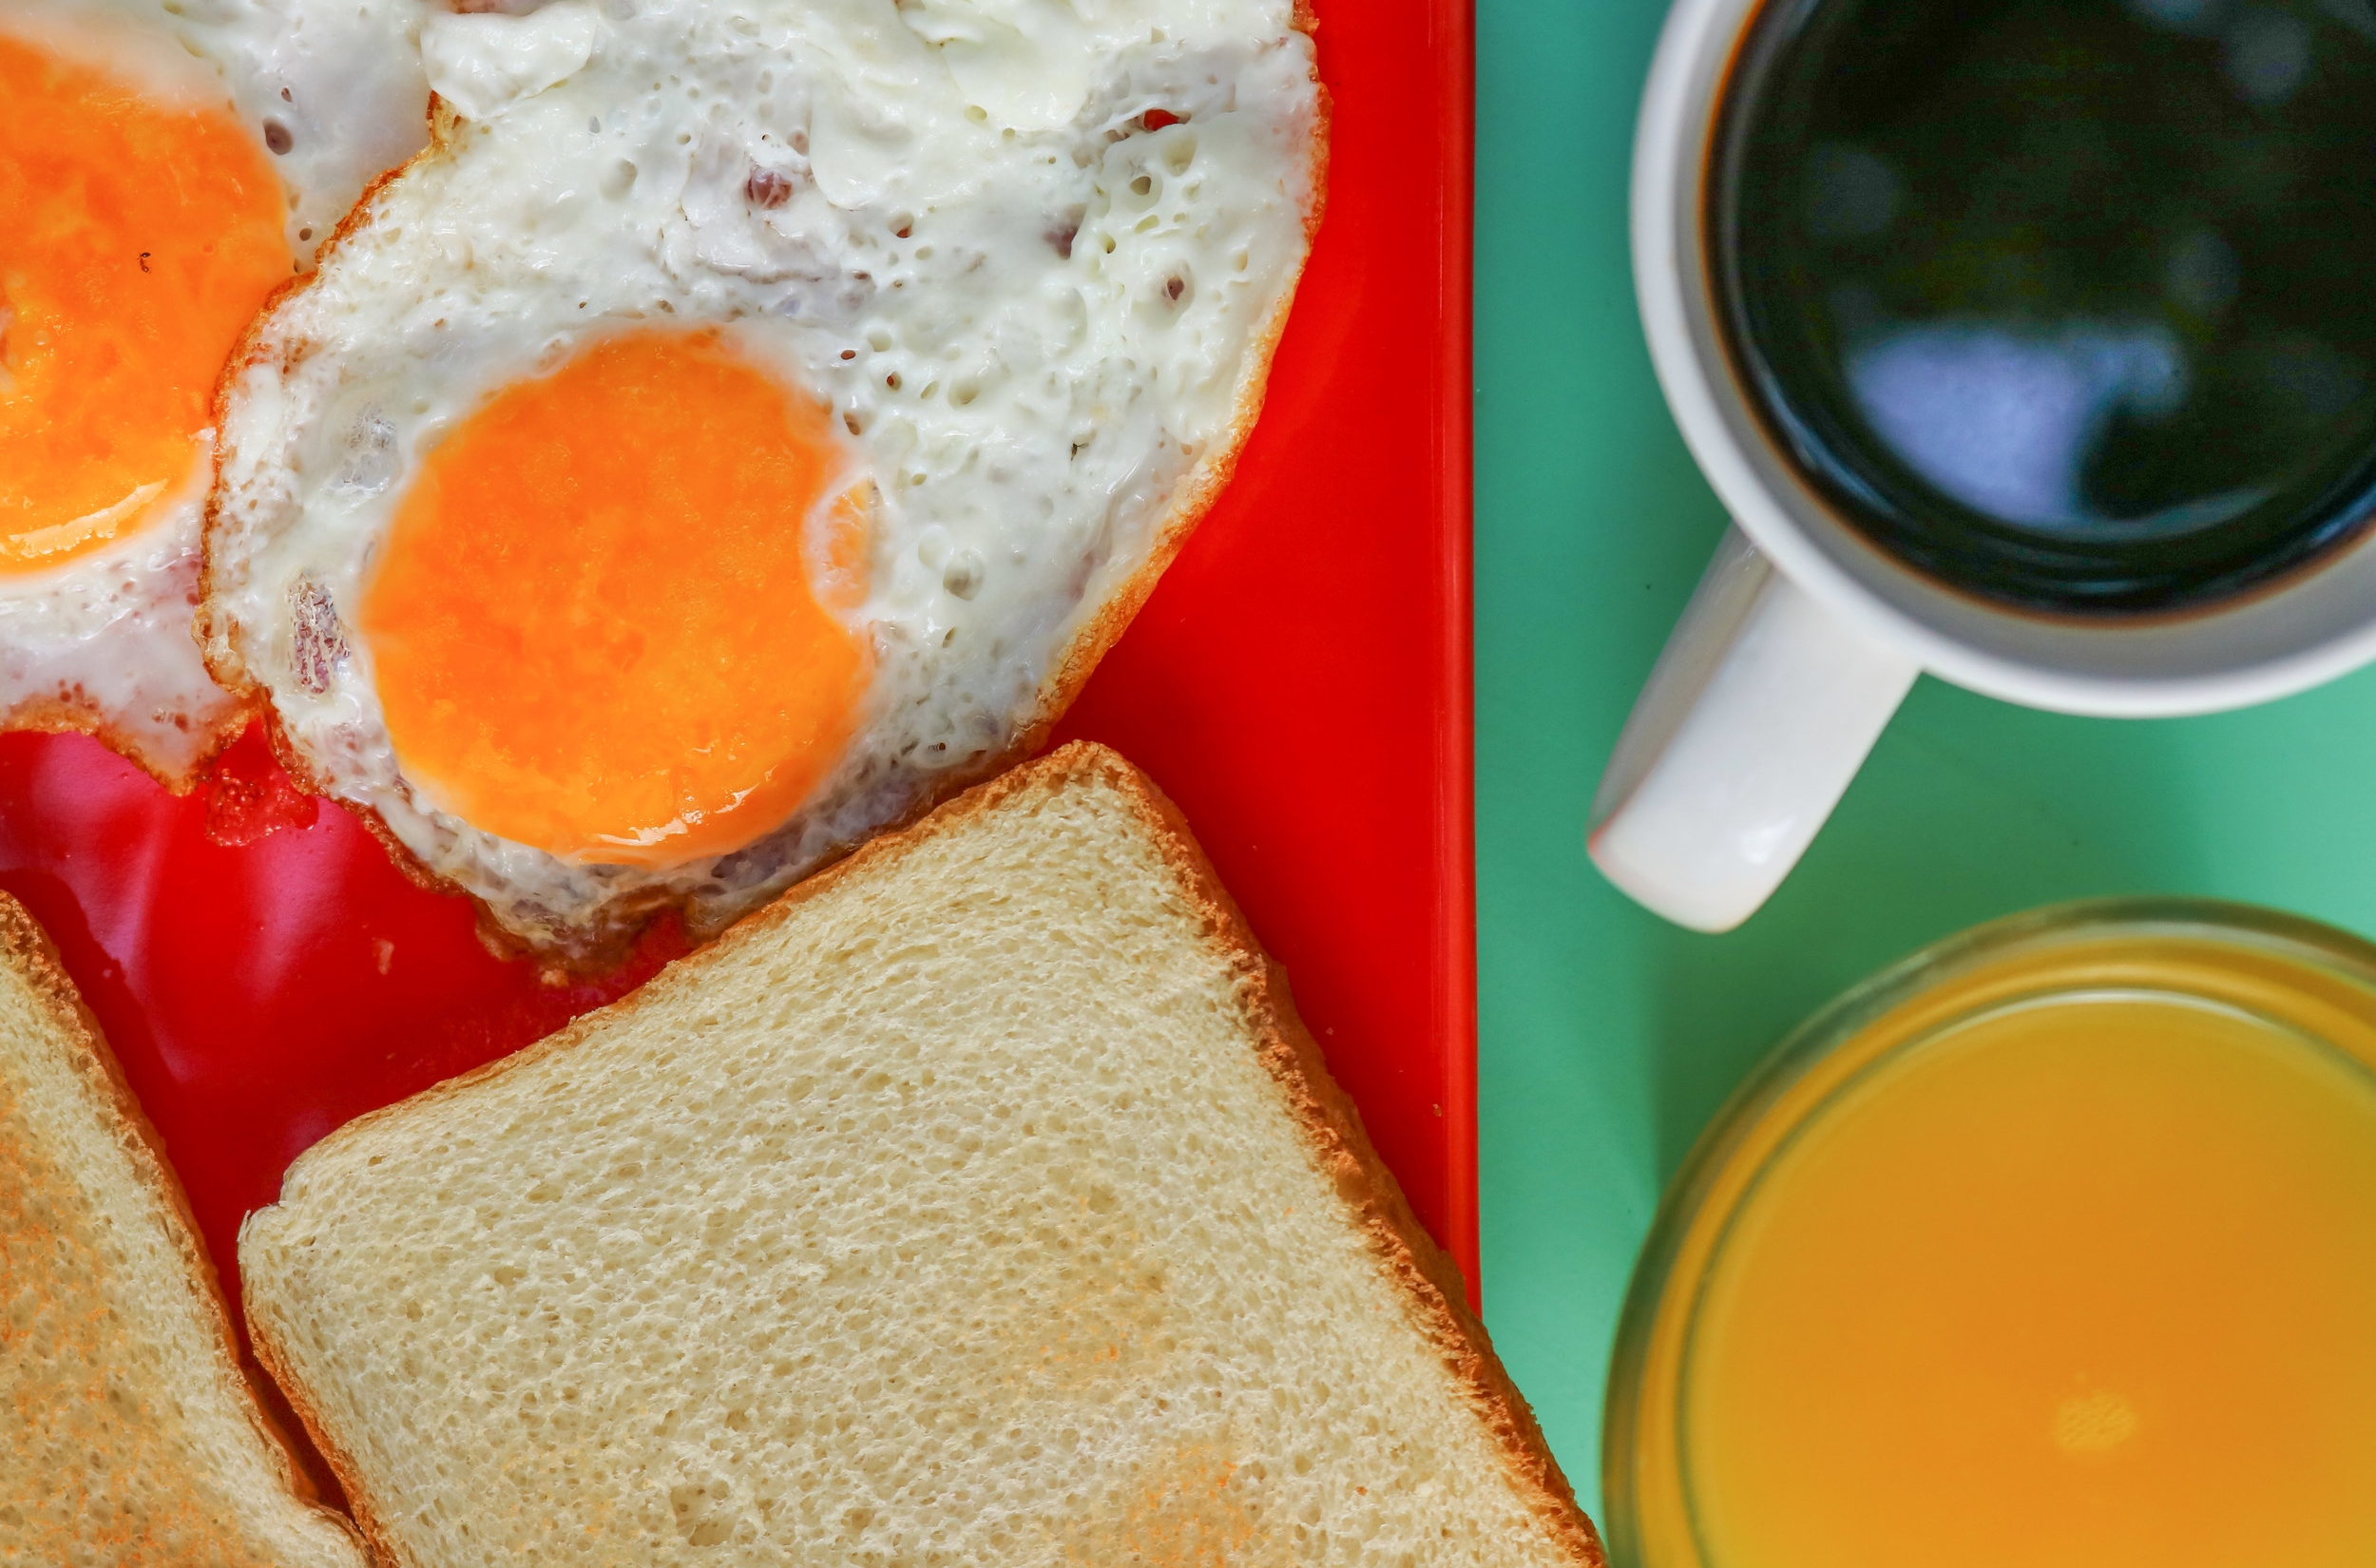 Breakfast & Bicycles - All reservations include fresh breakfast and complimentary bicycles!